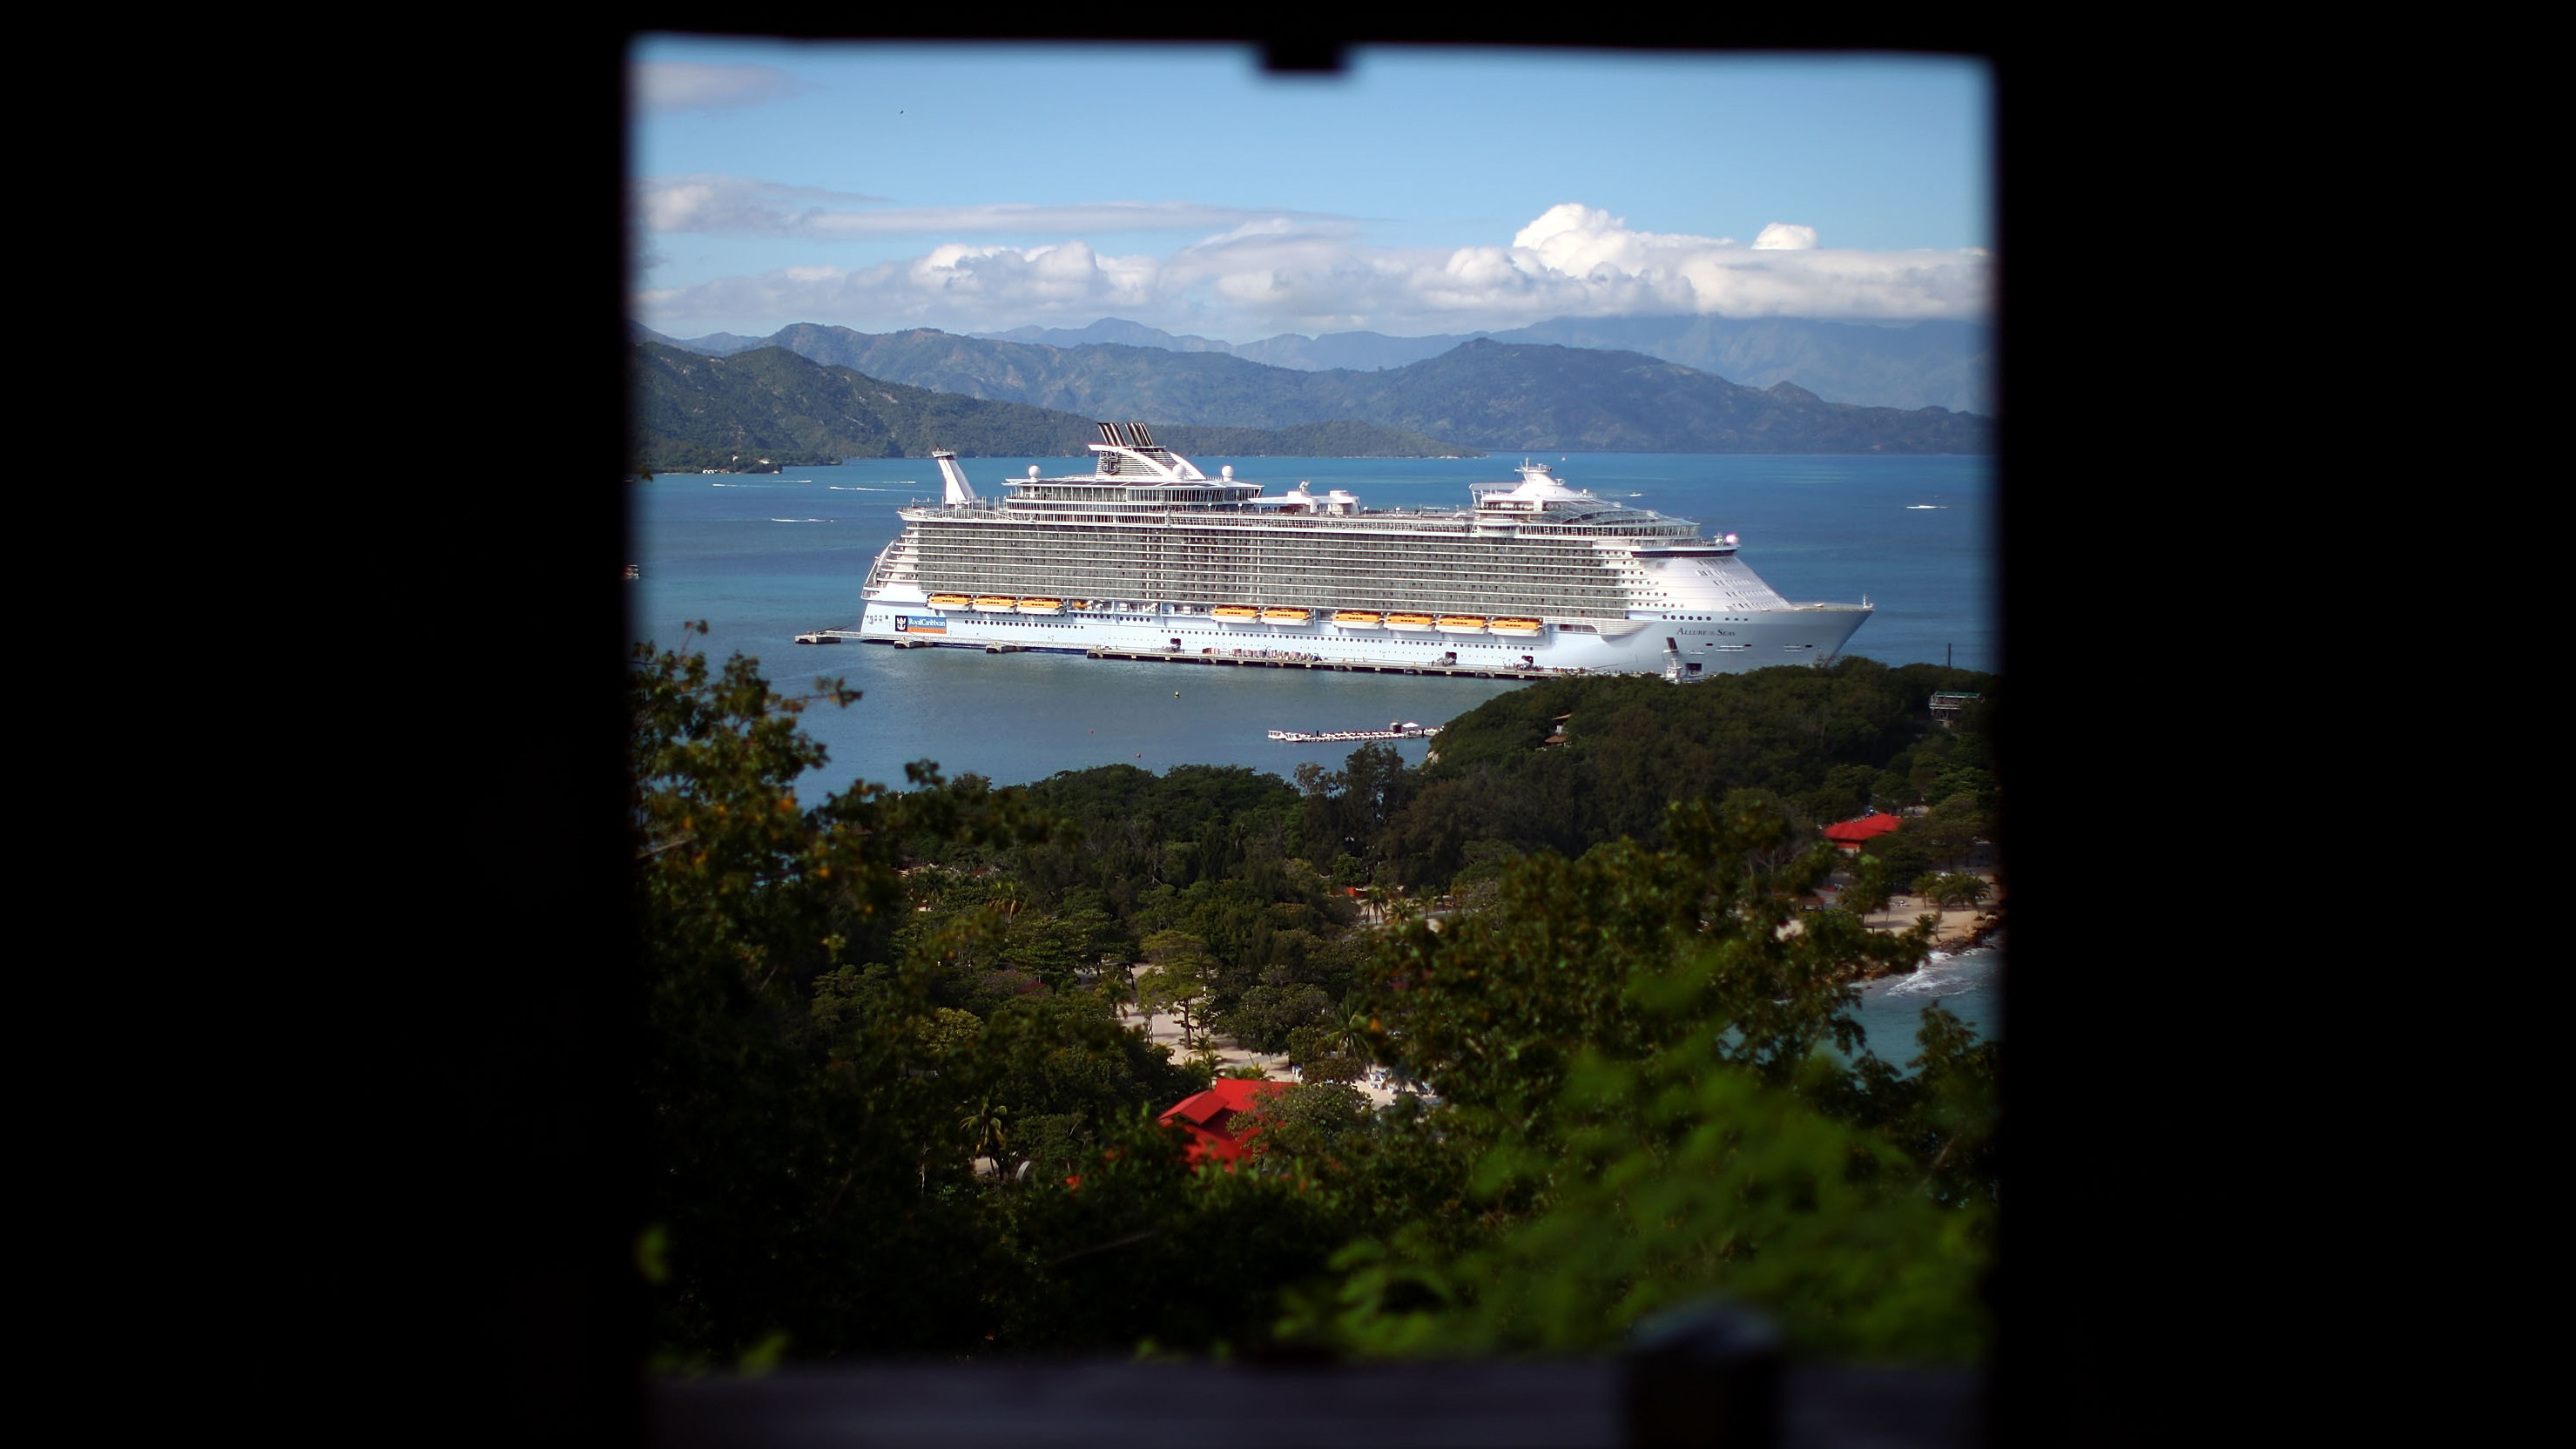 The Allure of the Seas is the newest ship in the Royal Caribbean fleet and the largest cruise ship ever built. It sits at a pier at Labadee on the coast of northern Haiti. Guests go ashore to an enclosed private beach.